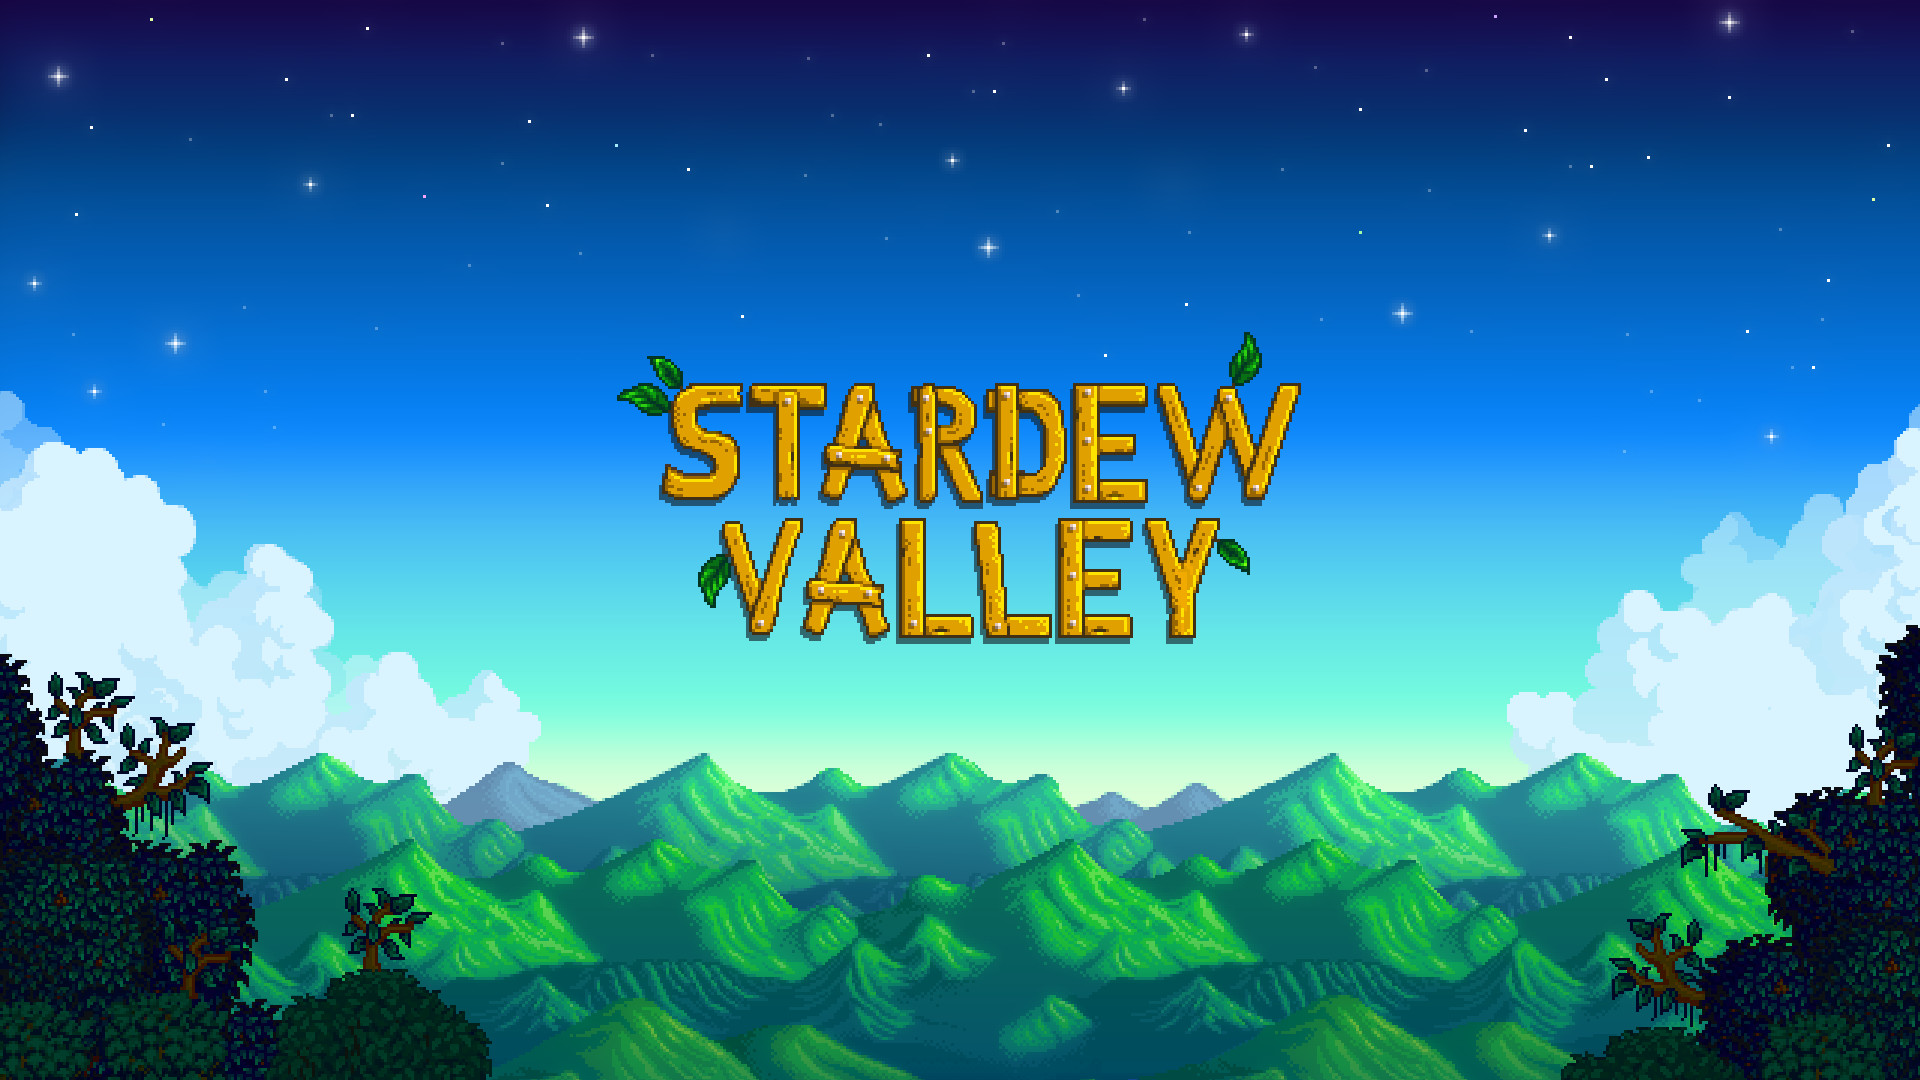 8 Reasons Why Stardew Valley is Better Than Harvest Moon – The Koalition